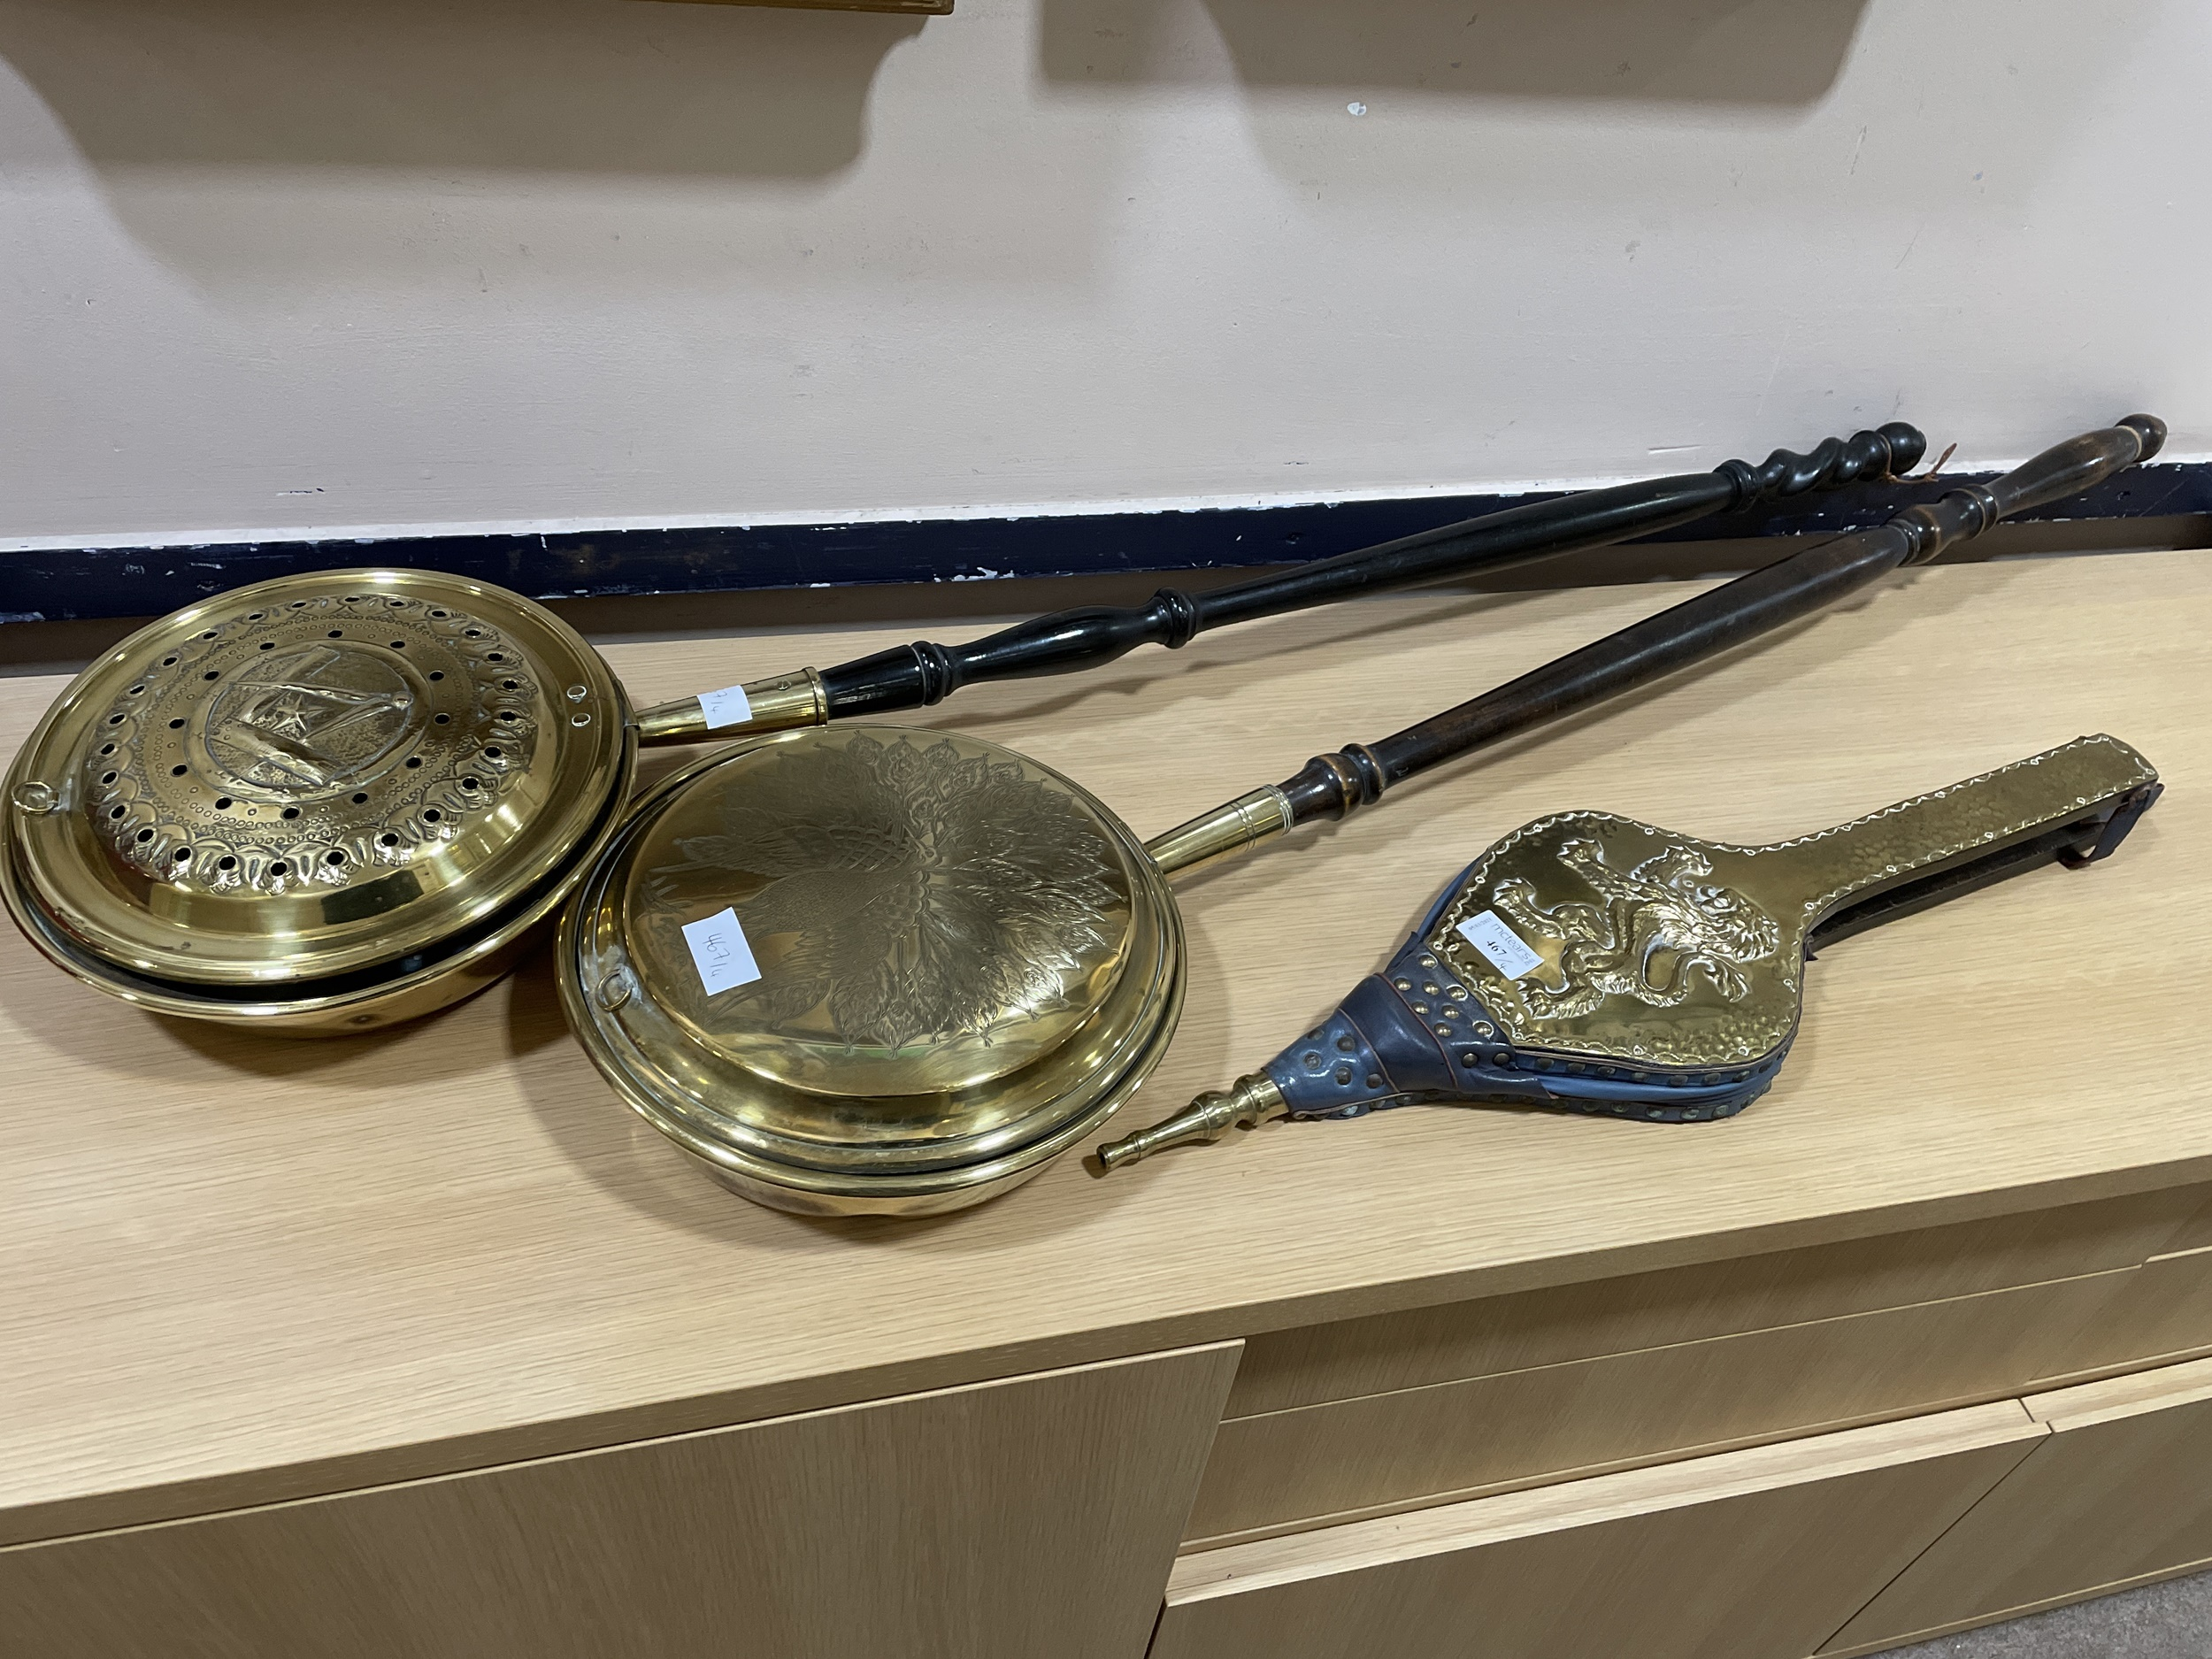 A PAIR OF VINTAGE BELLOWS, TWO BRASS BED PANS AND A BRASS CHARGER